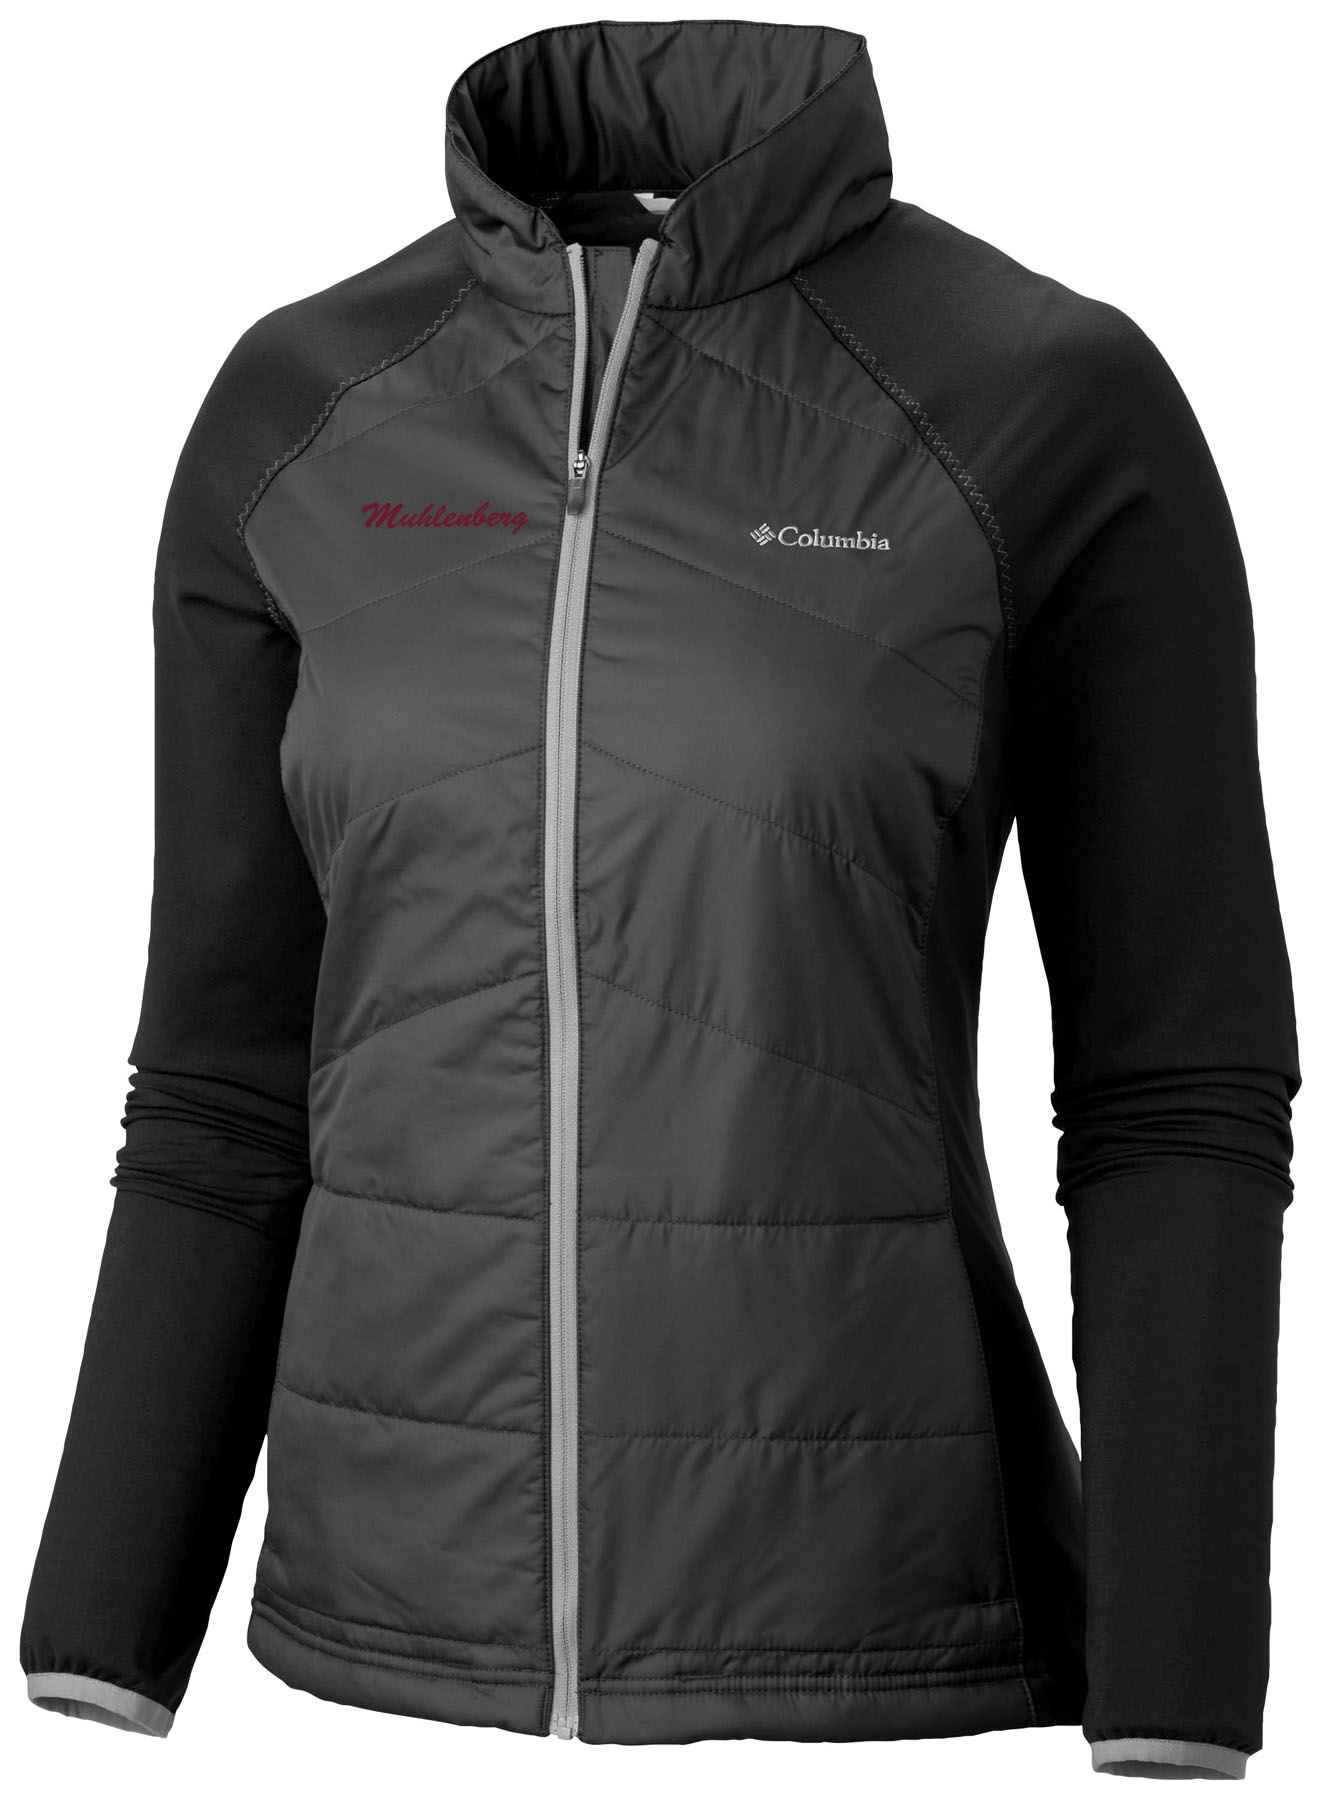 Image For Mach Hybrid Women's Jacket by Columbia